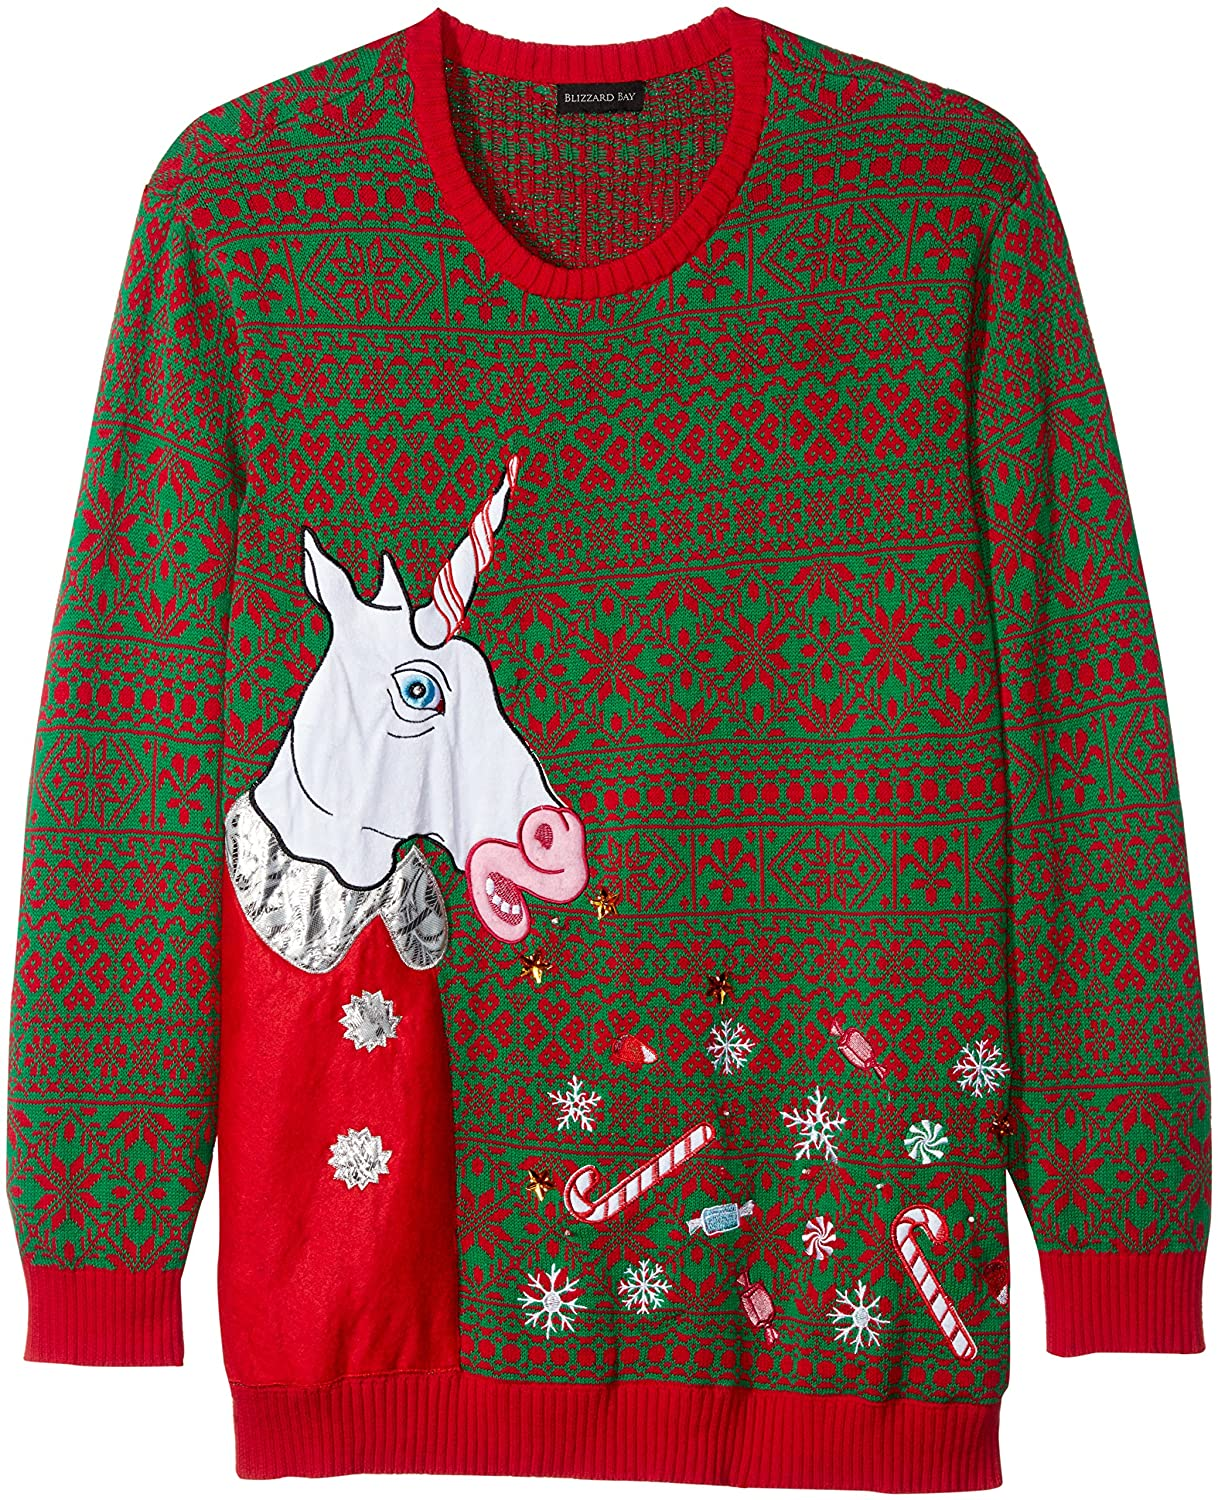 6f93cce11 Men's big and tall long sleeve pullover sweater with a fun and festive  holiday design. Comfortable and soft knit for a warm and cozy feel